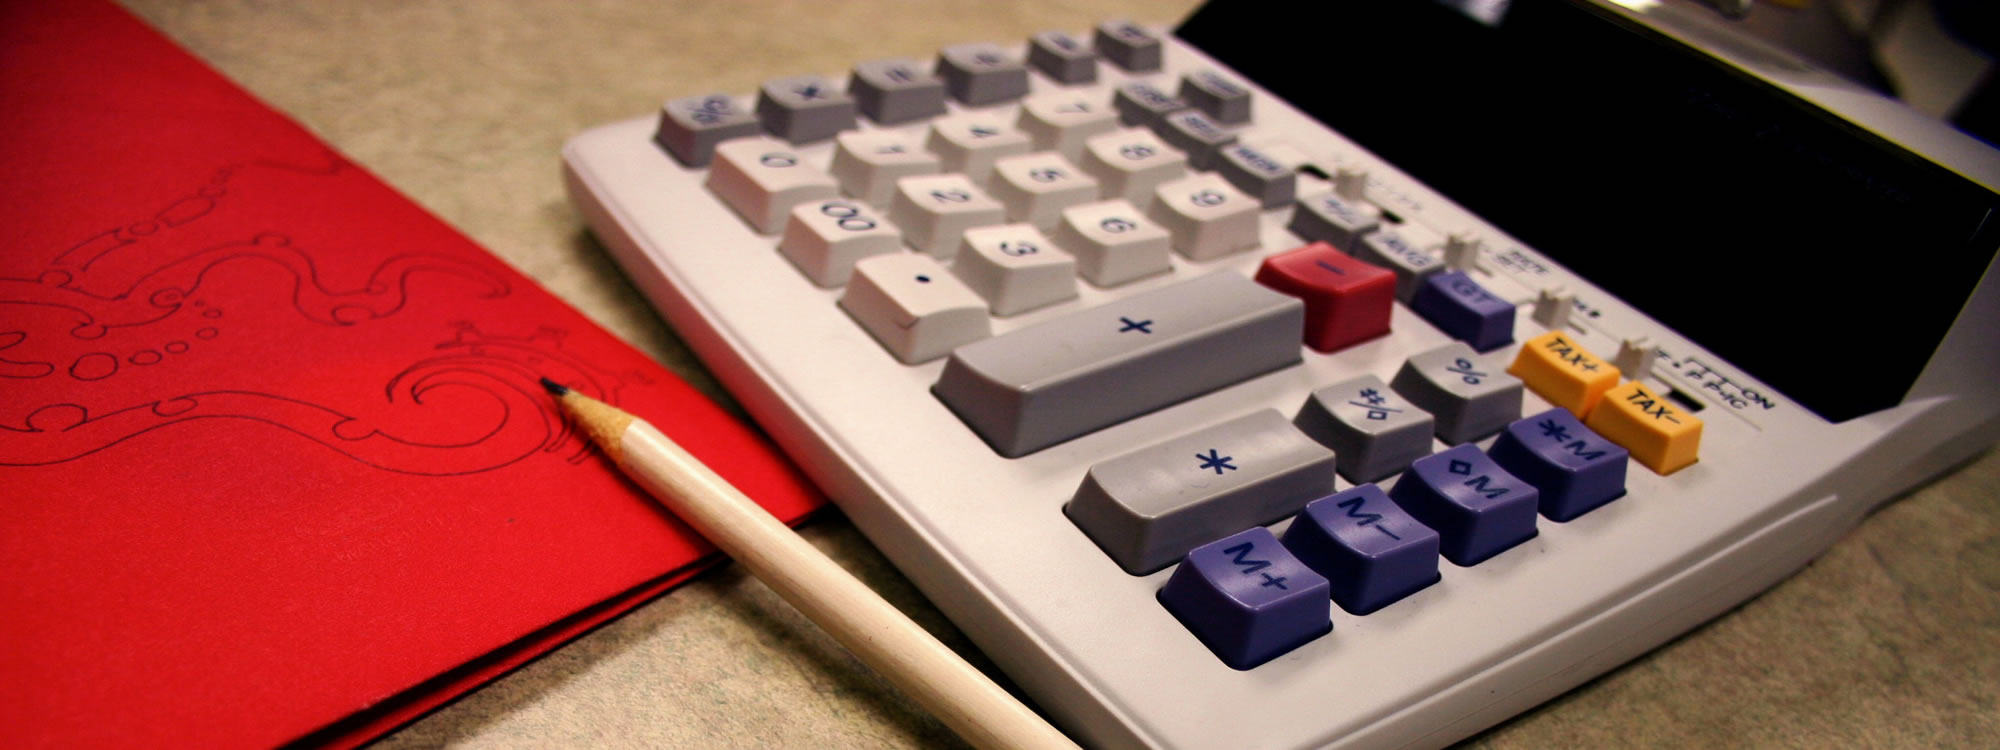 desk-calculator-cropped